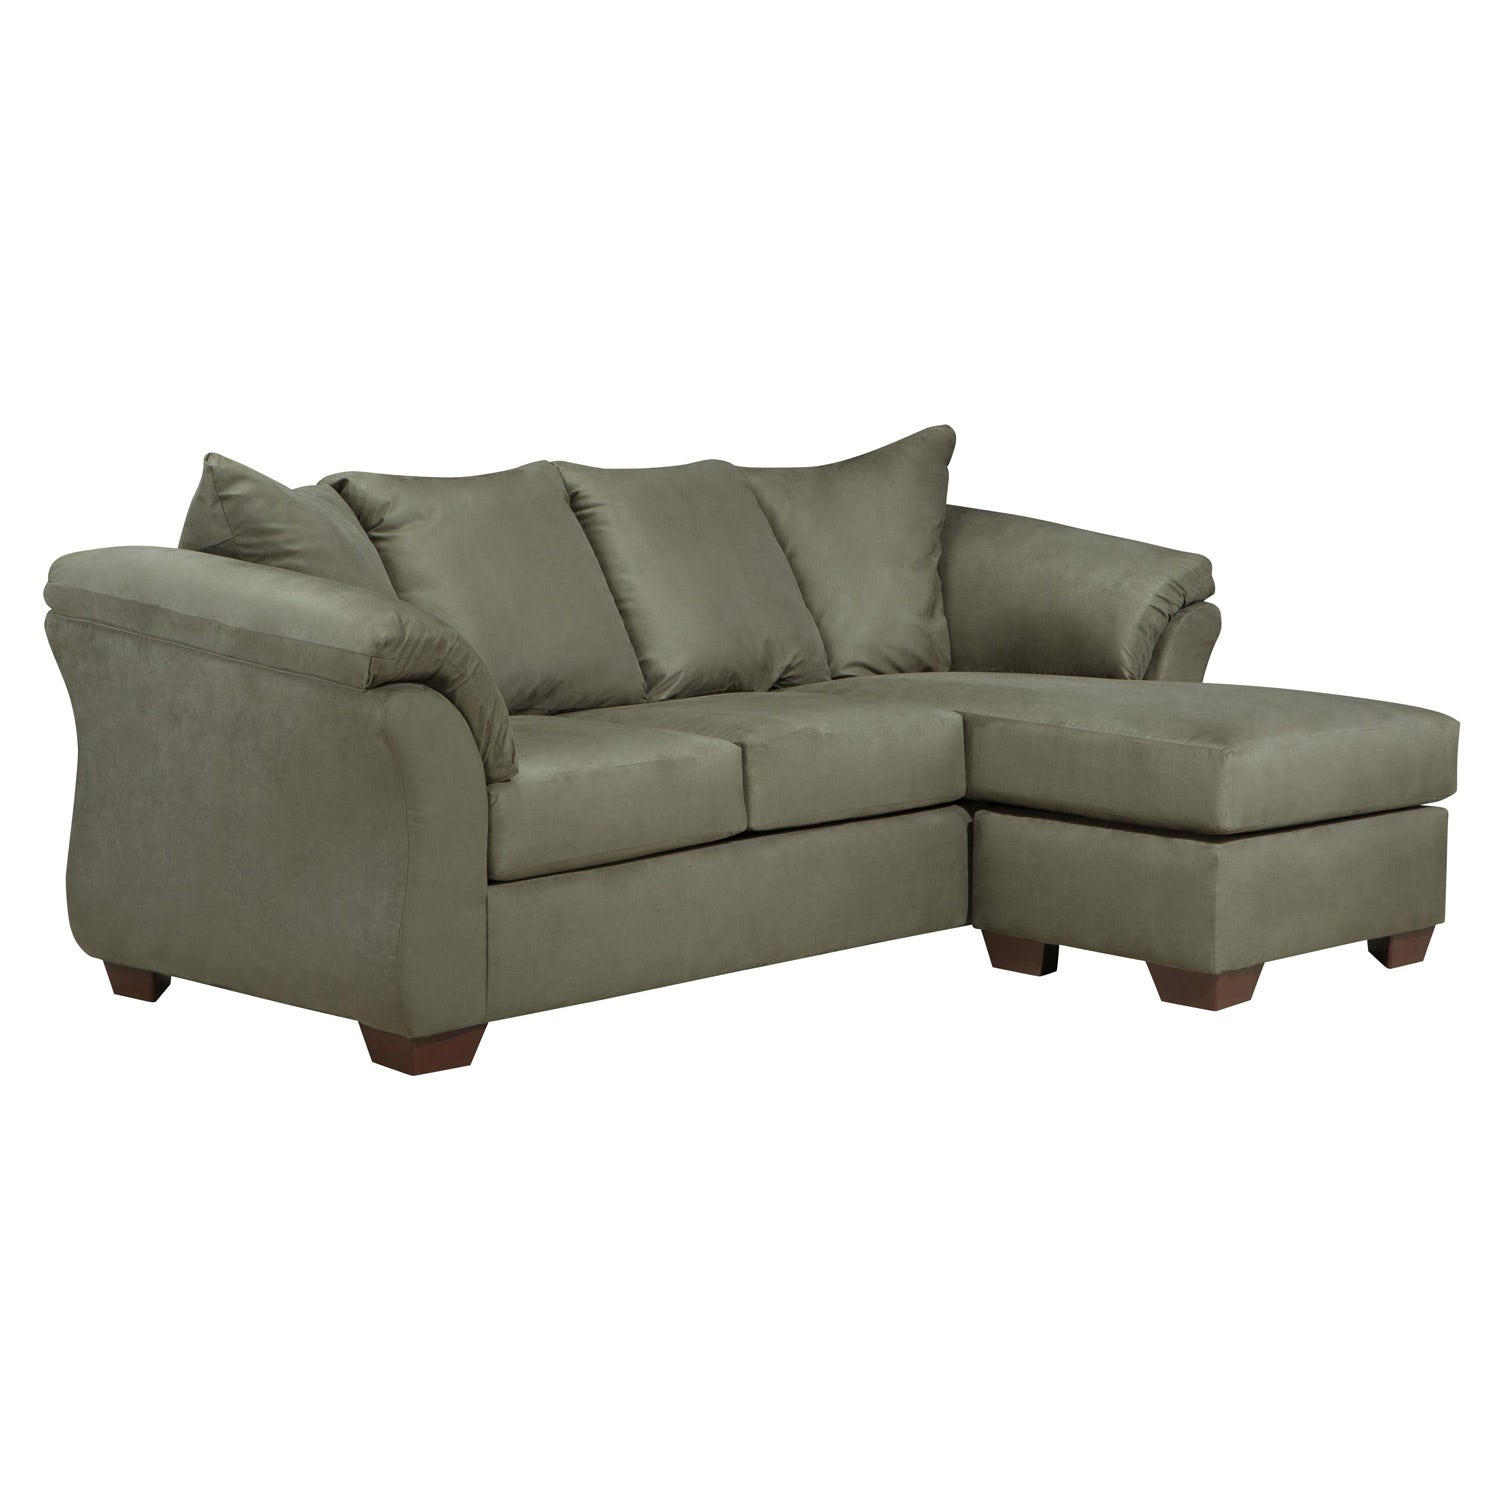 7500318 Darcy Design In Signature Ashley Sofa Chaise Grey By Sage hQrCtsd